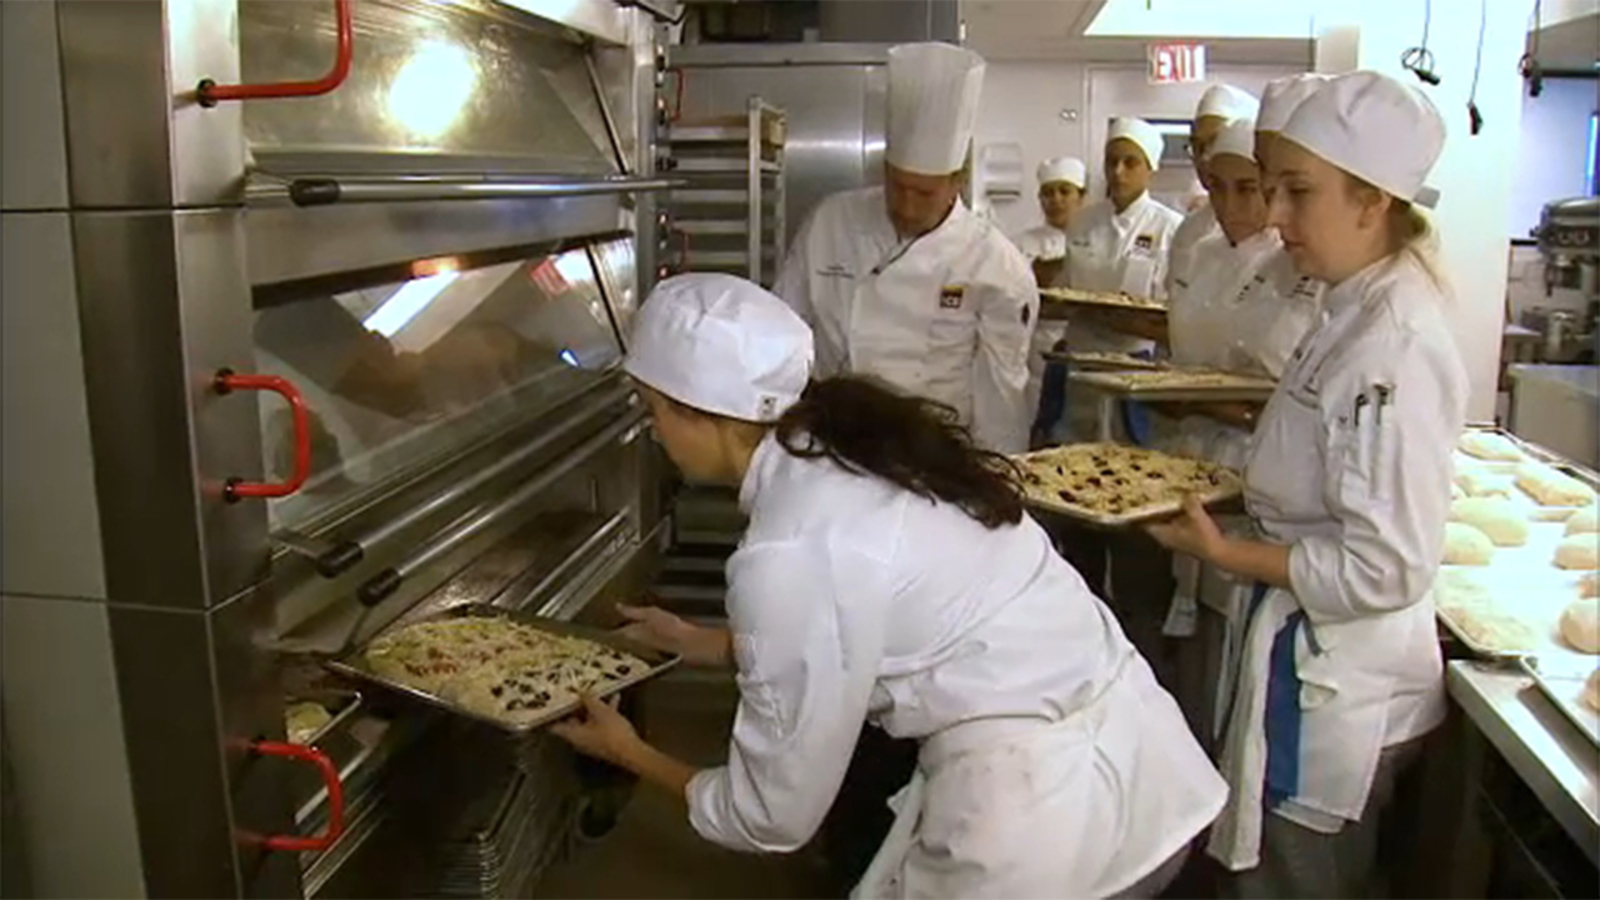 New York City Chef Instructors Call 6 Raise Over 15 Years Unfair